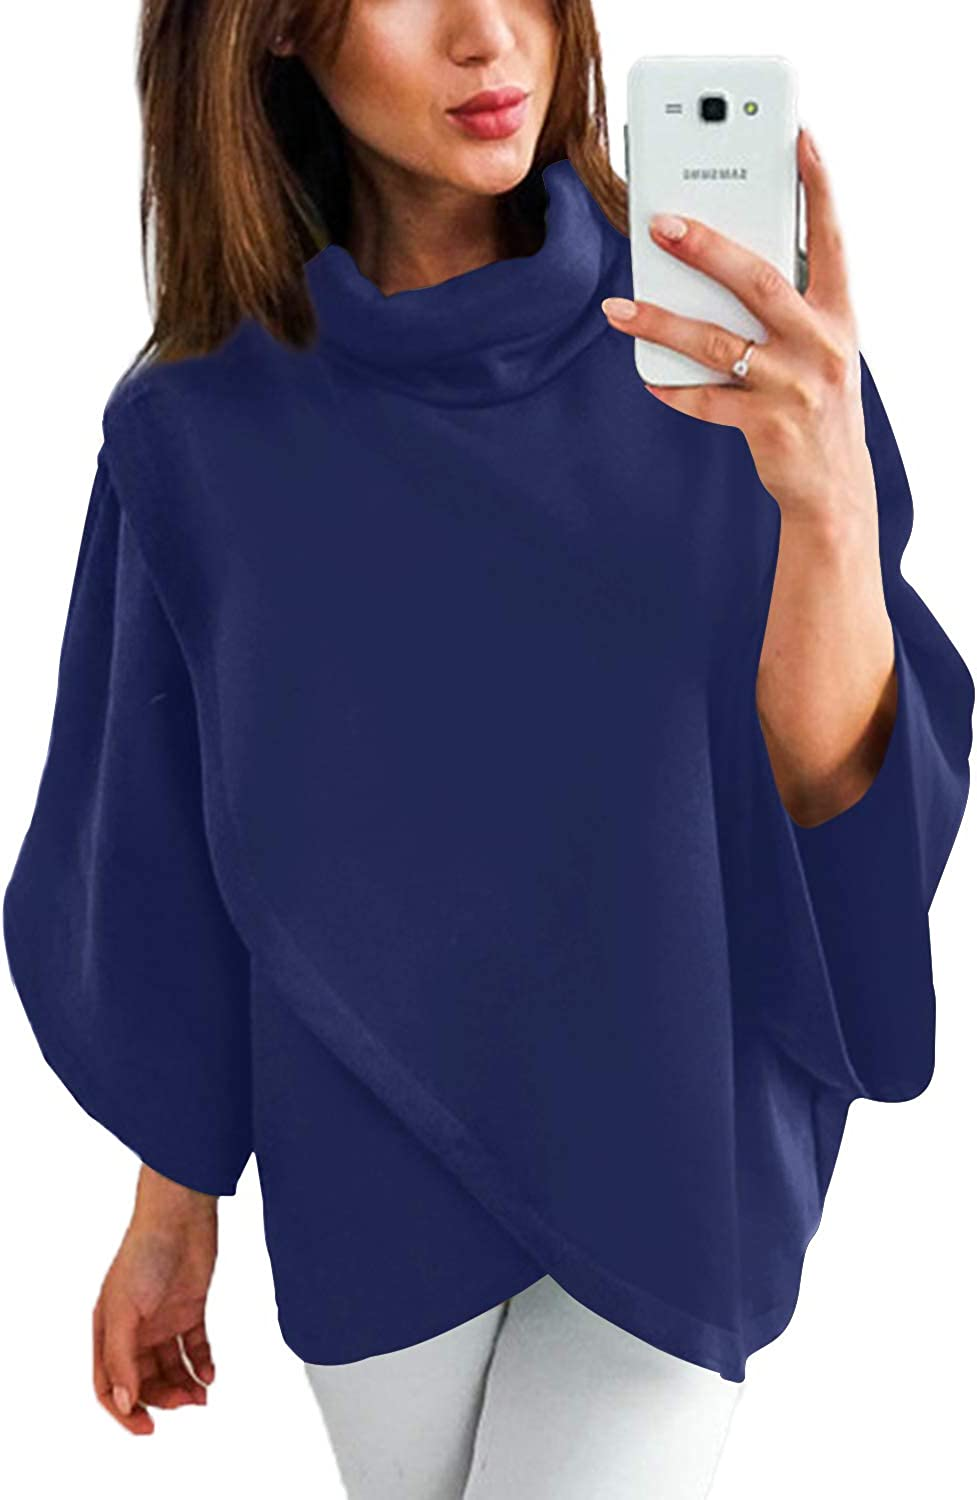 YOINS Outwear Capes Turtleneck Poncho for Women Chimney Collar Flared 3/4 Sleeves Irregular Hem Pullover Sweaters Navy Medium